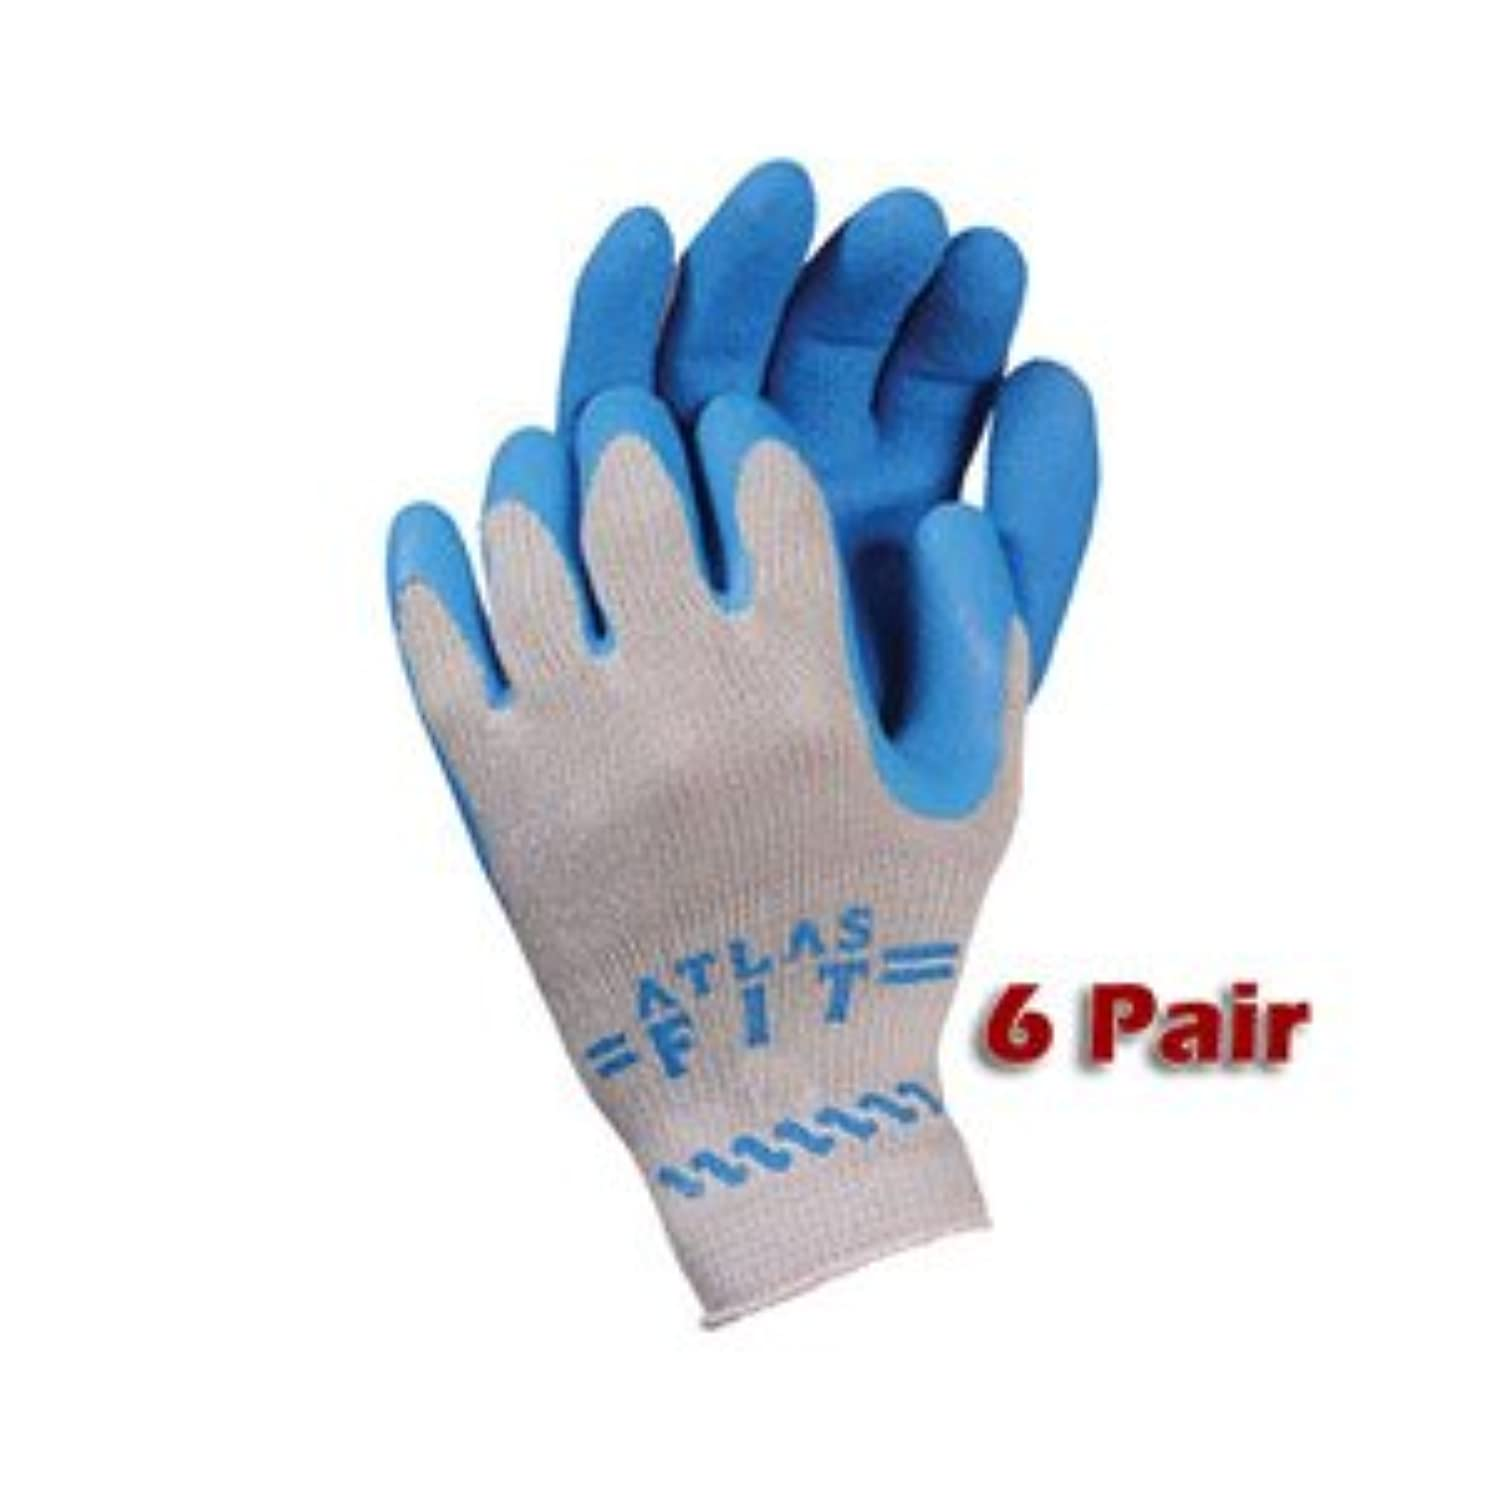 6 Pack Atlas Glove 300 Atlas Fit Super Grip Gloves - X-Large